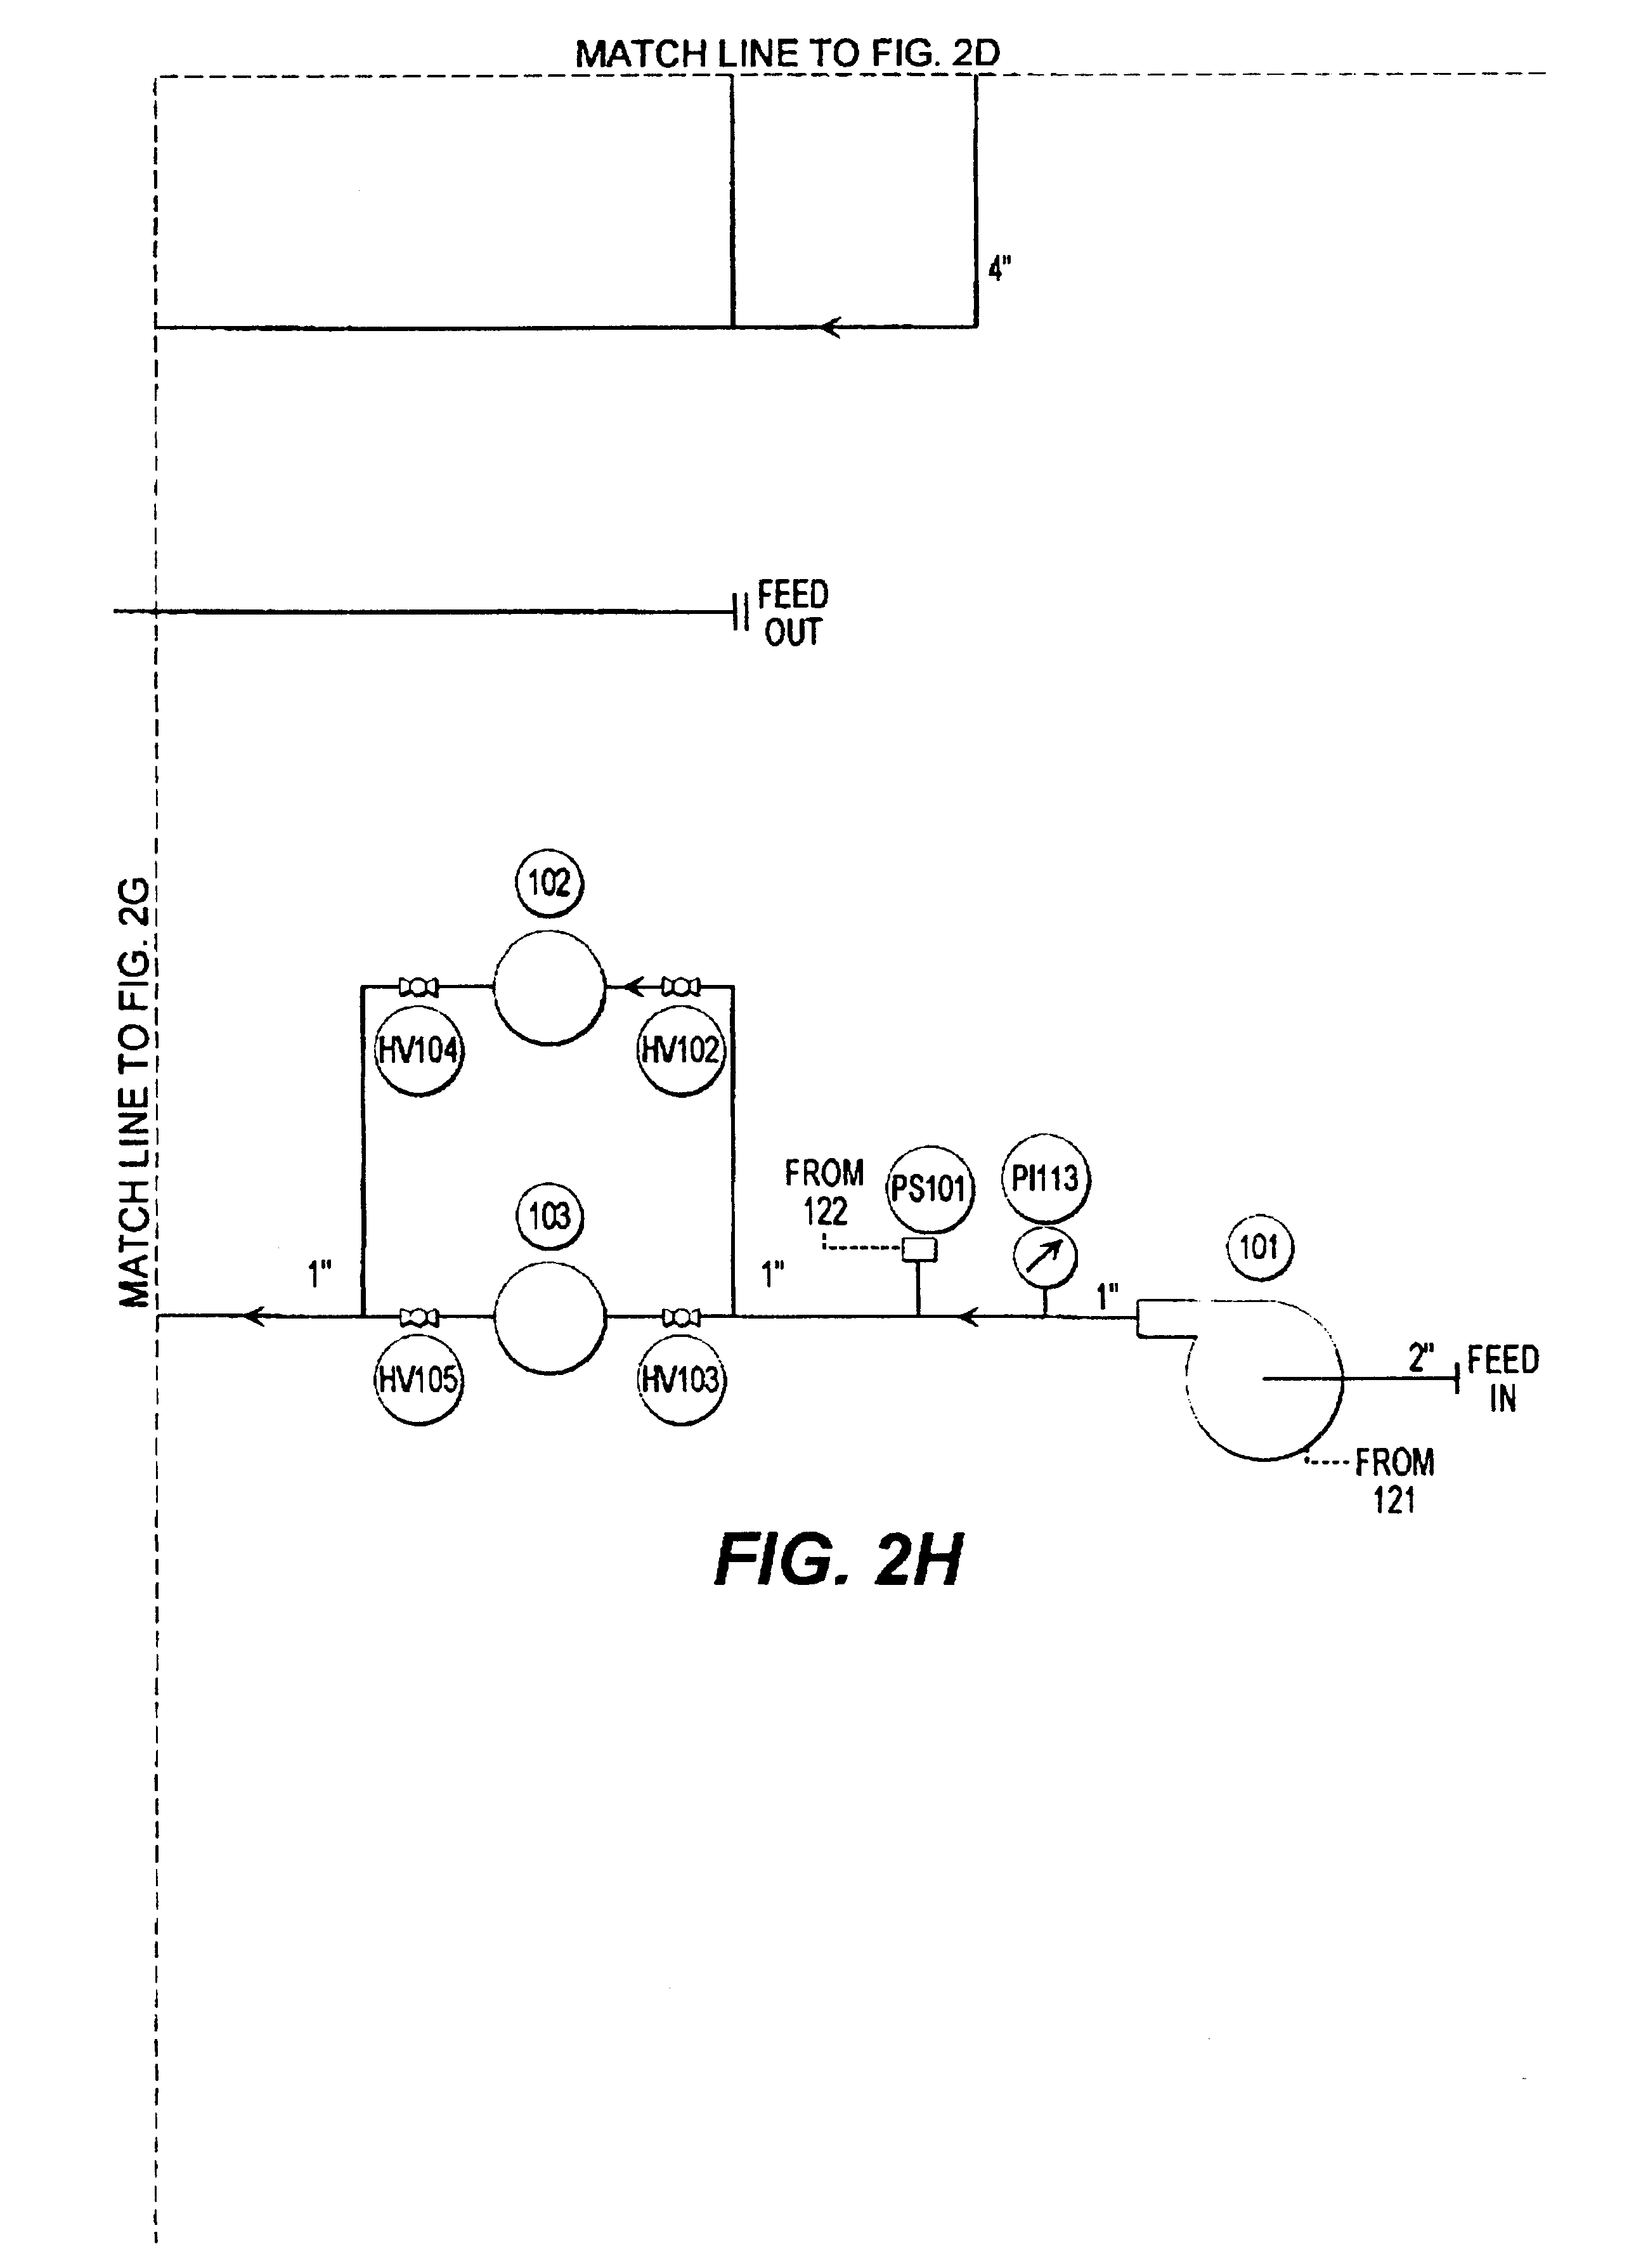 Patent US Apparatus and method for vapor pression